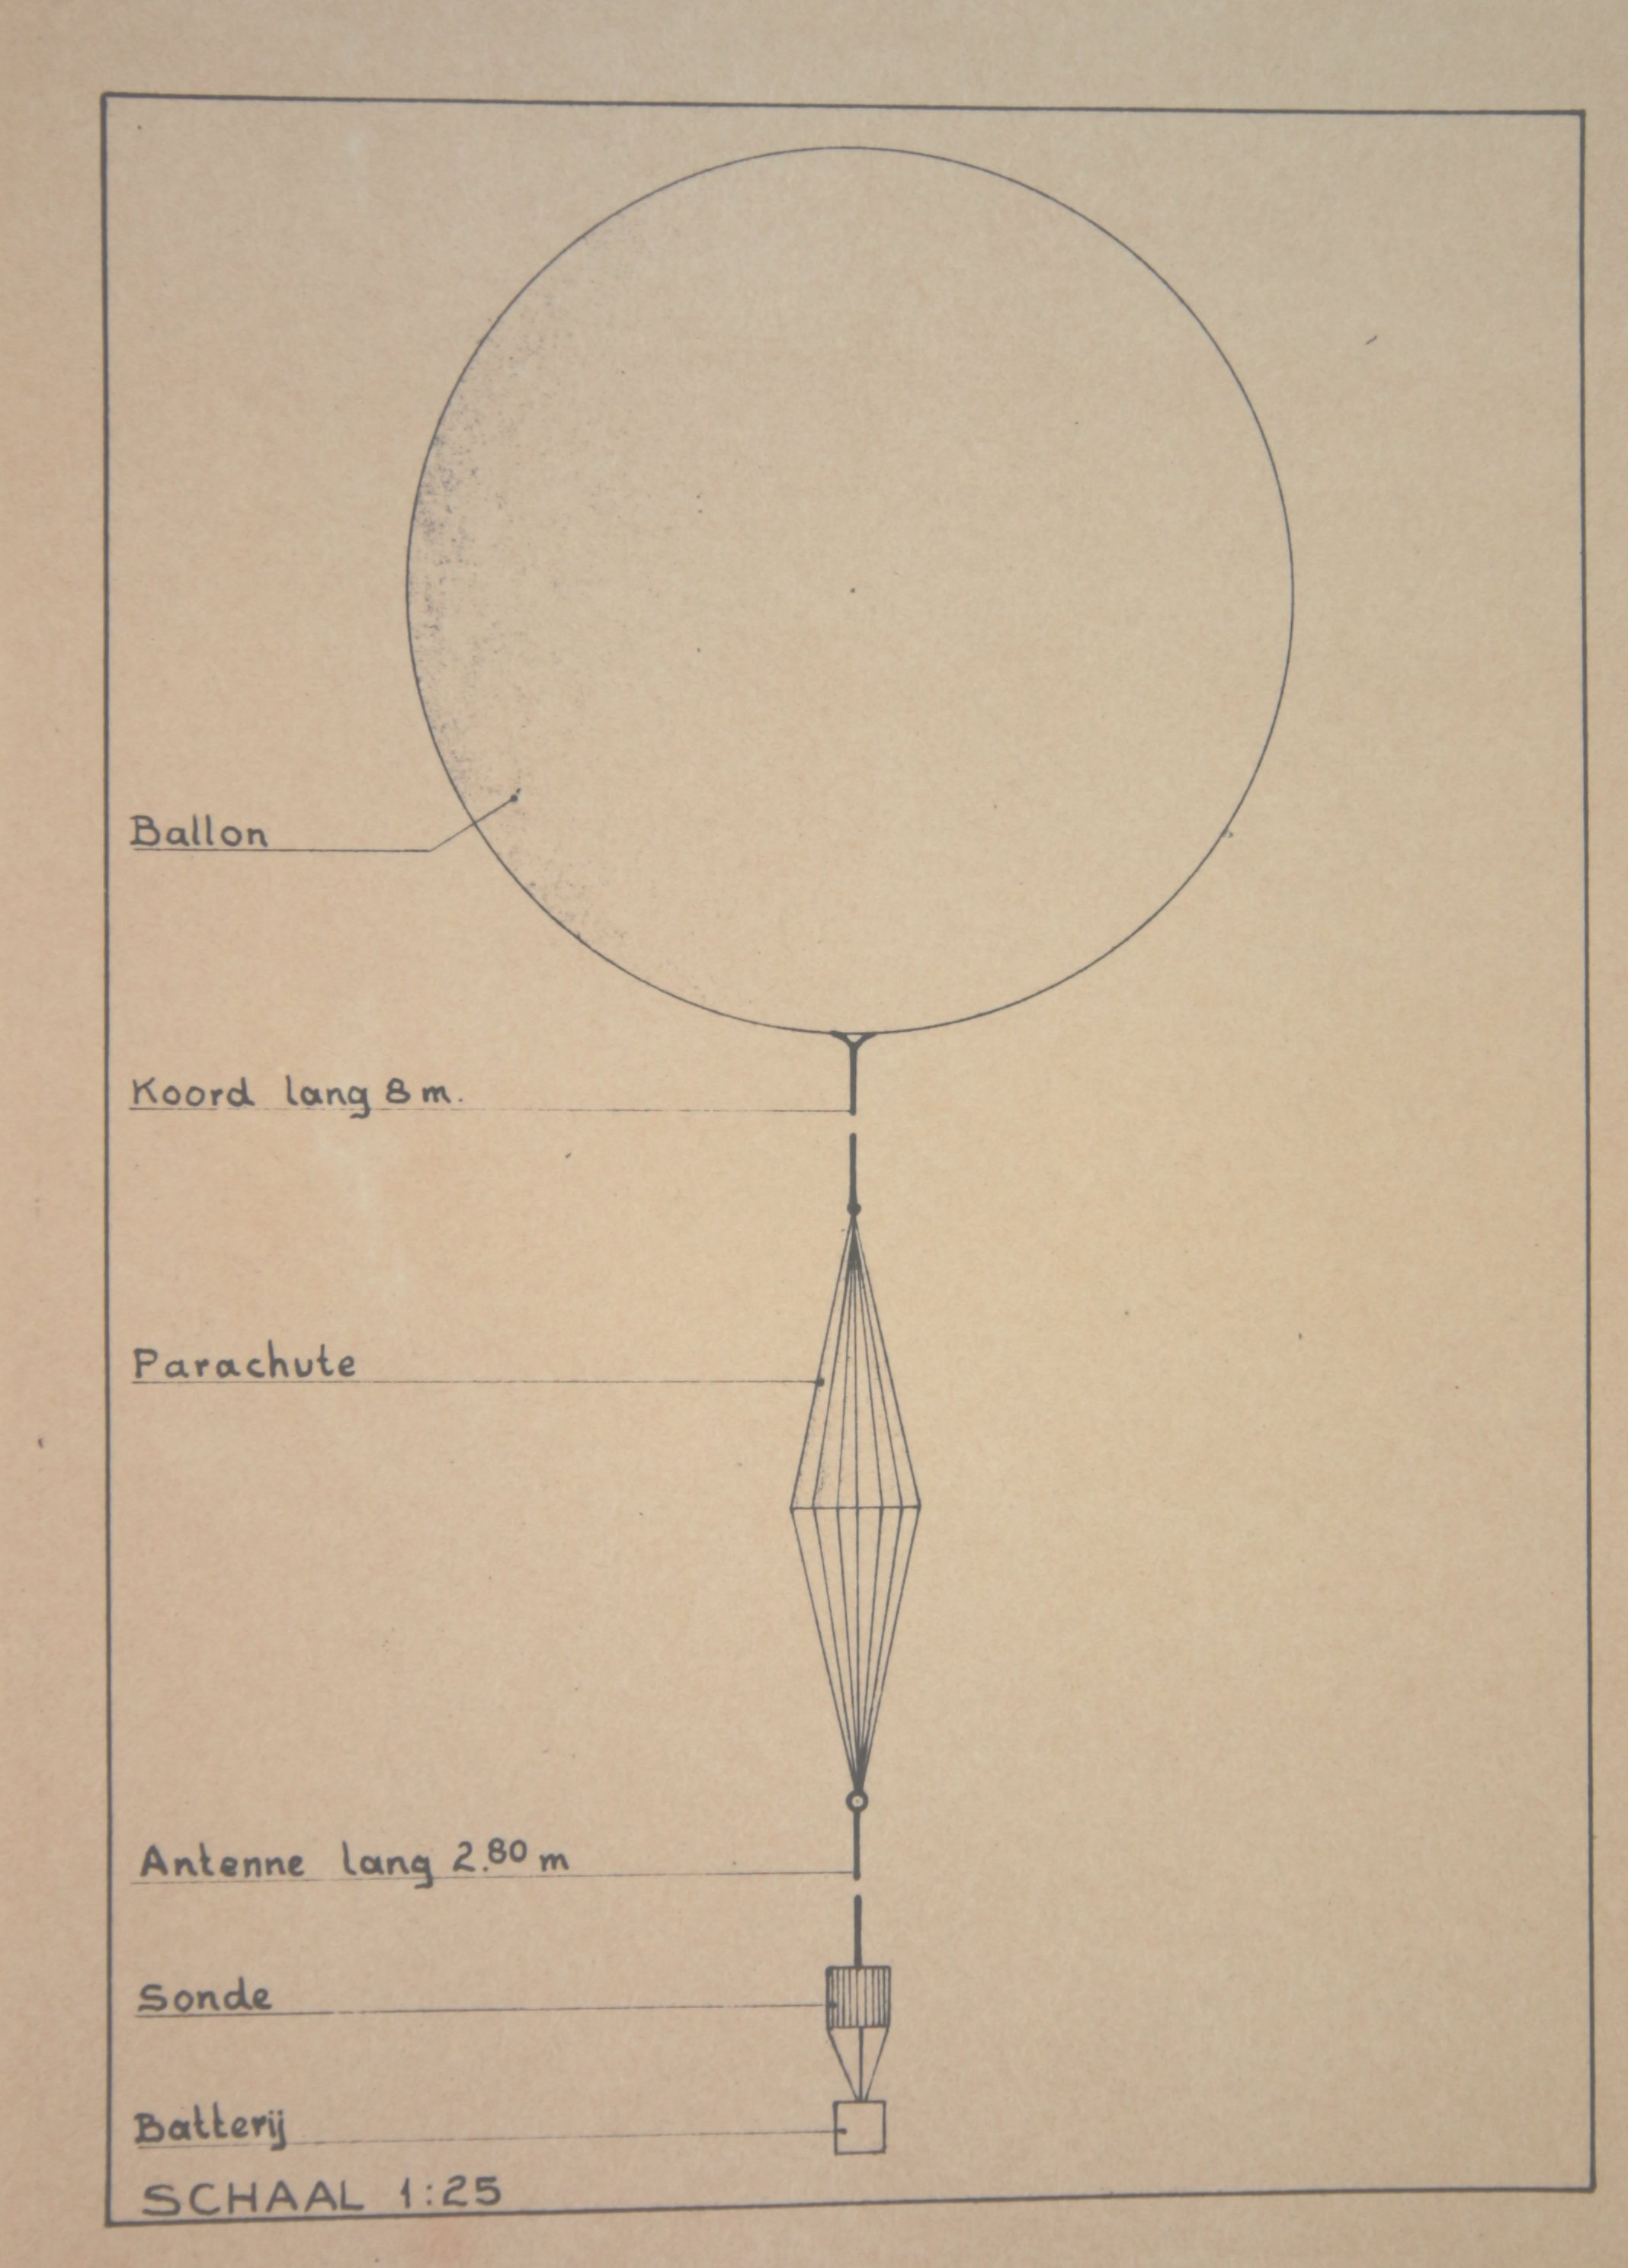 Schematic composition of the weather balloon with the meteorograph